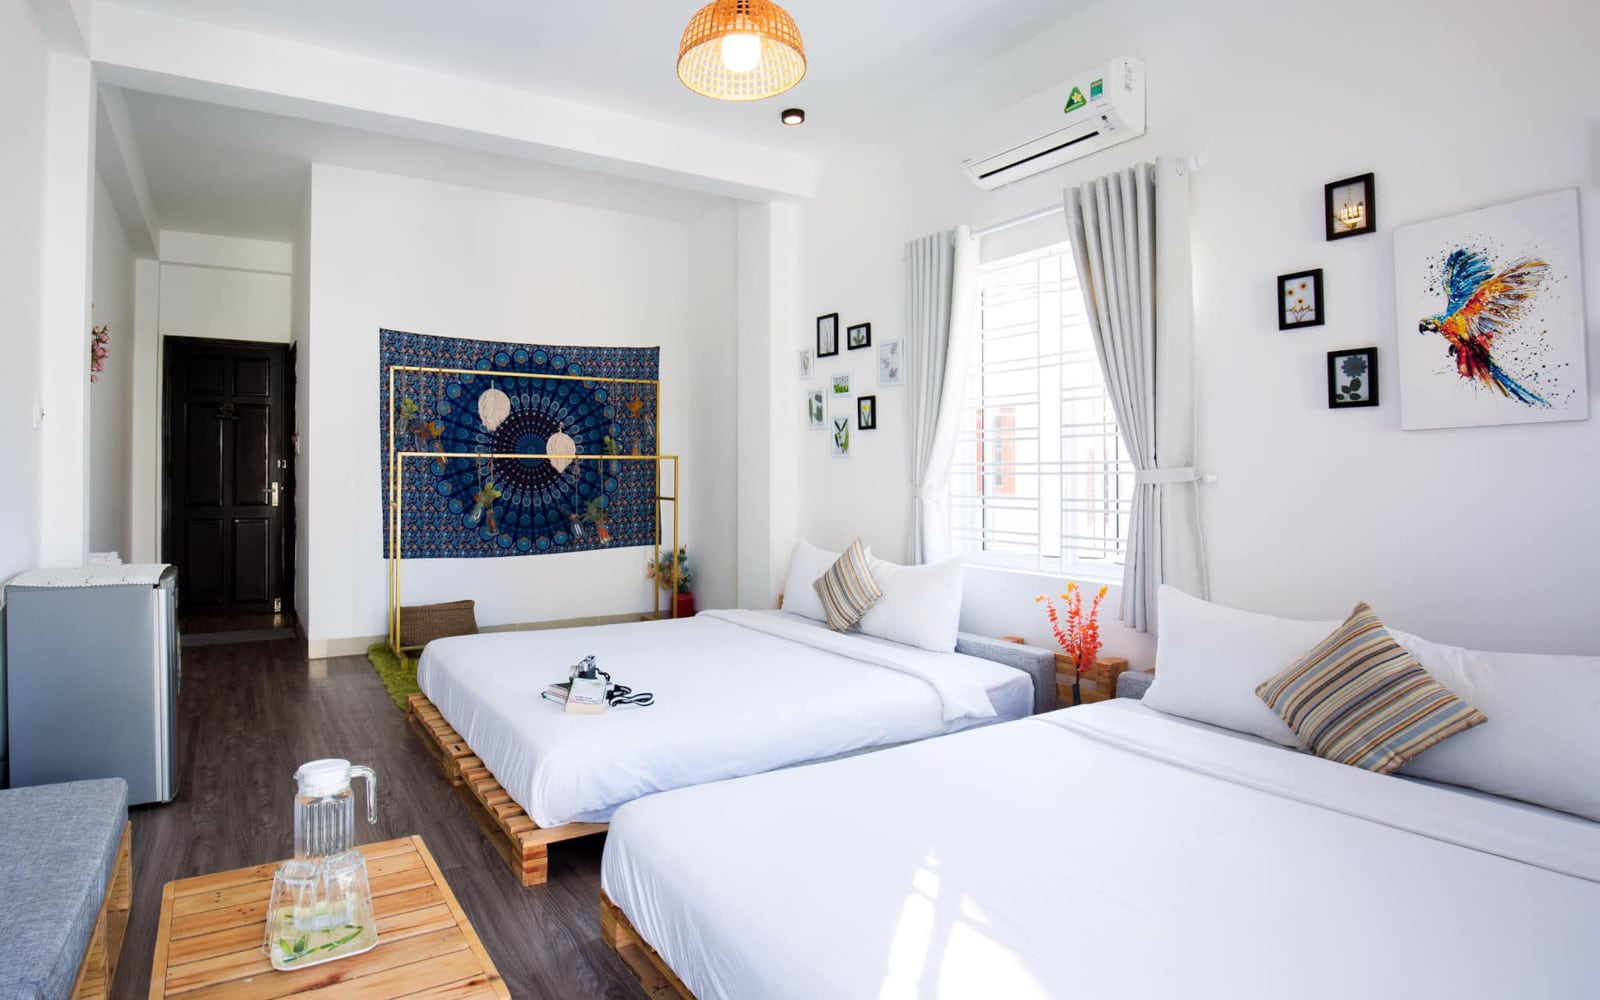 Image of the bedroom and decor in Nem's House Hoi An Homestay